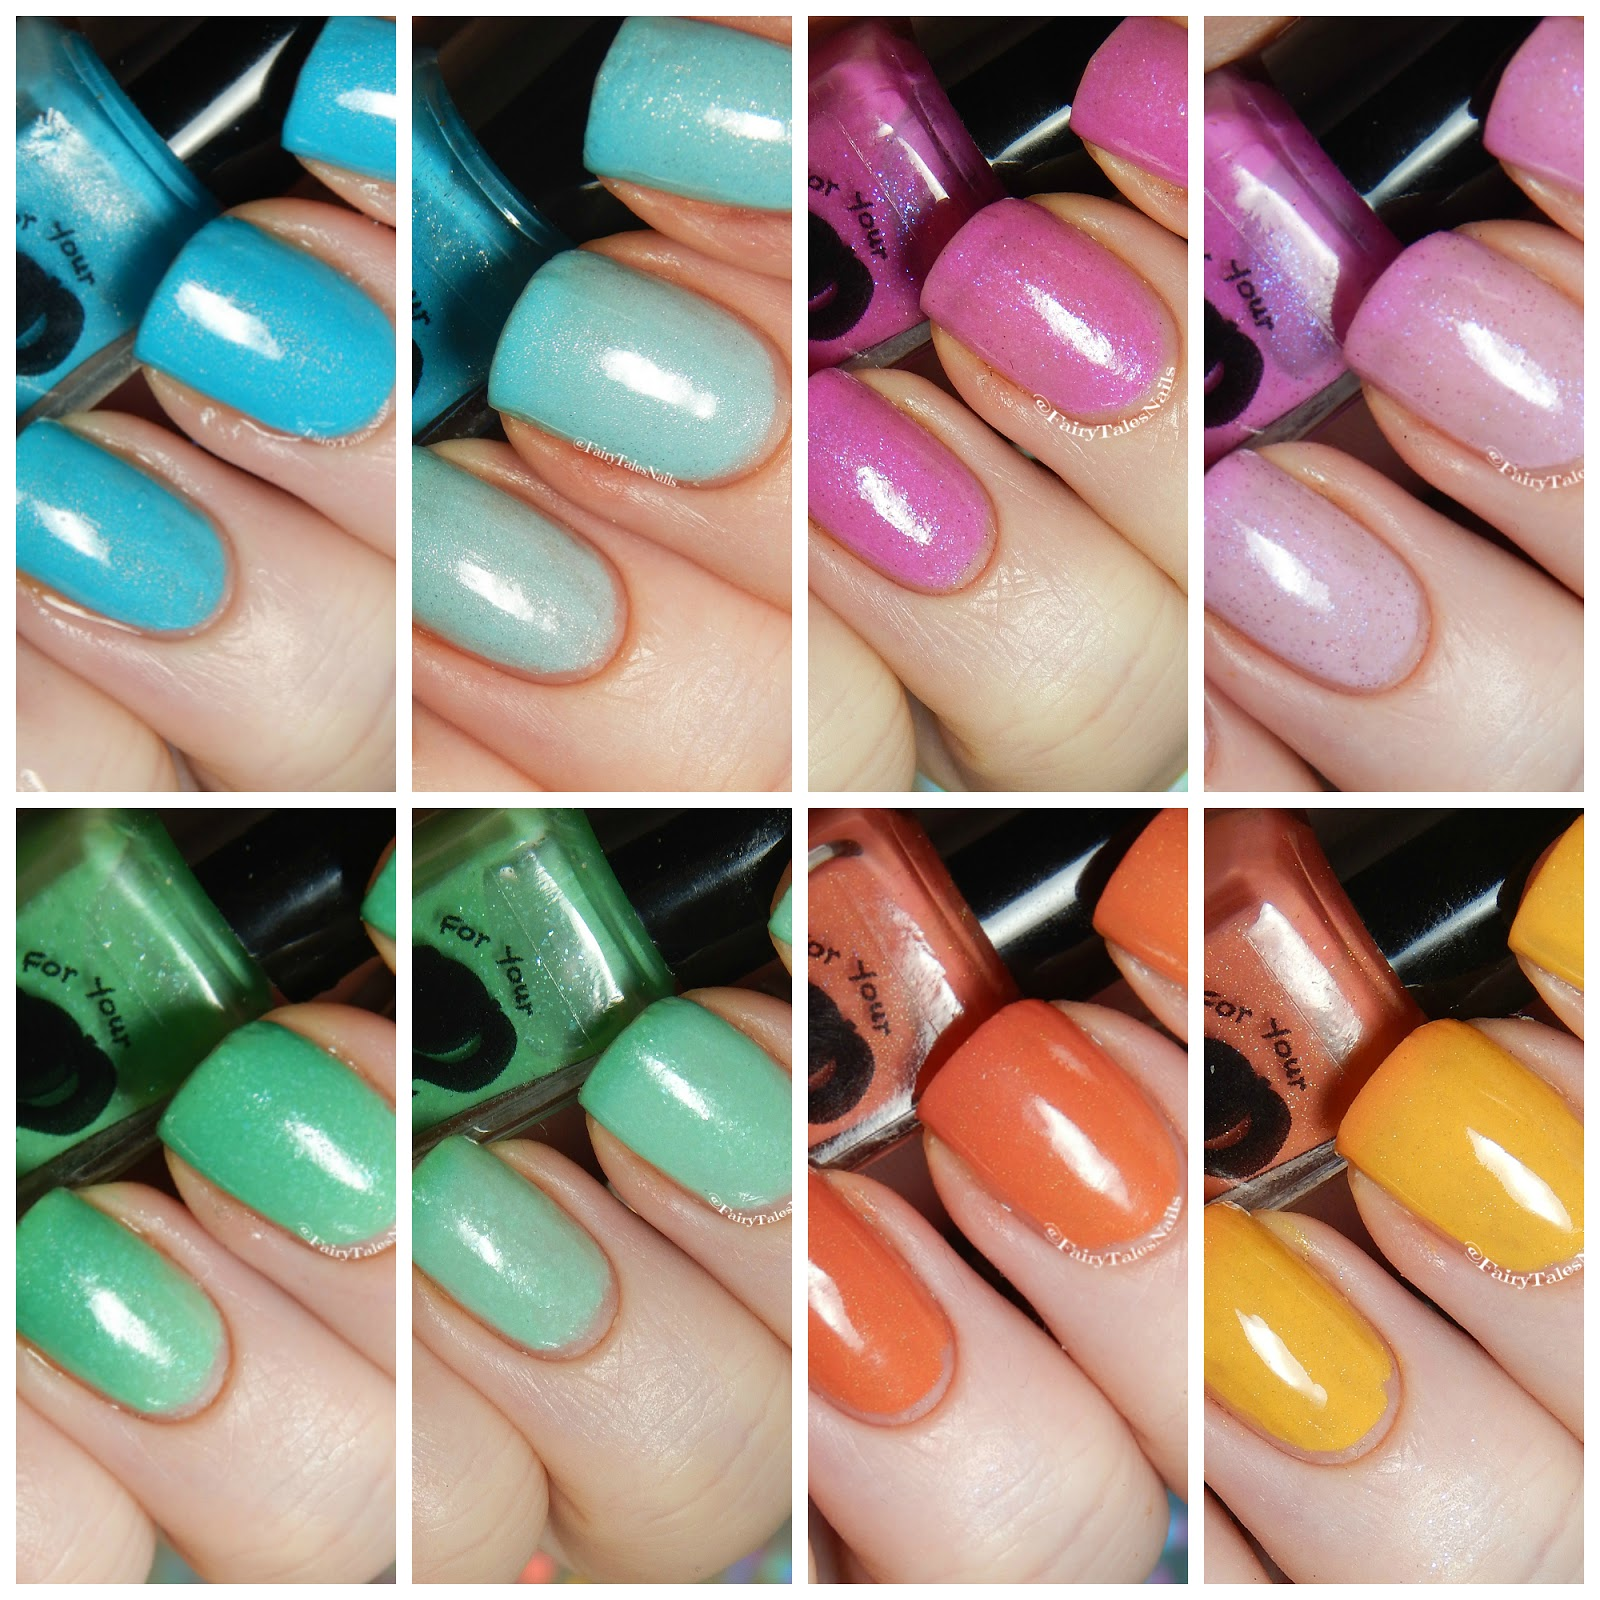 FairyTales Nails: For Your Nails Only Bring On Spring Collection ...